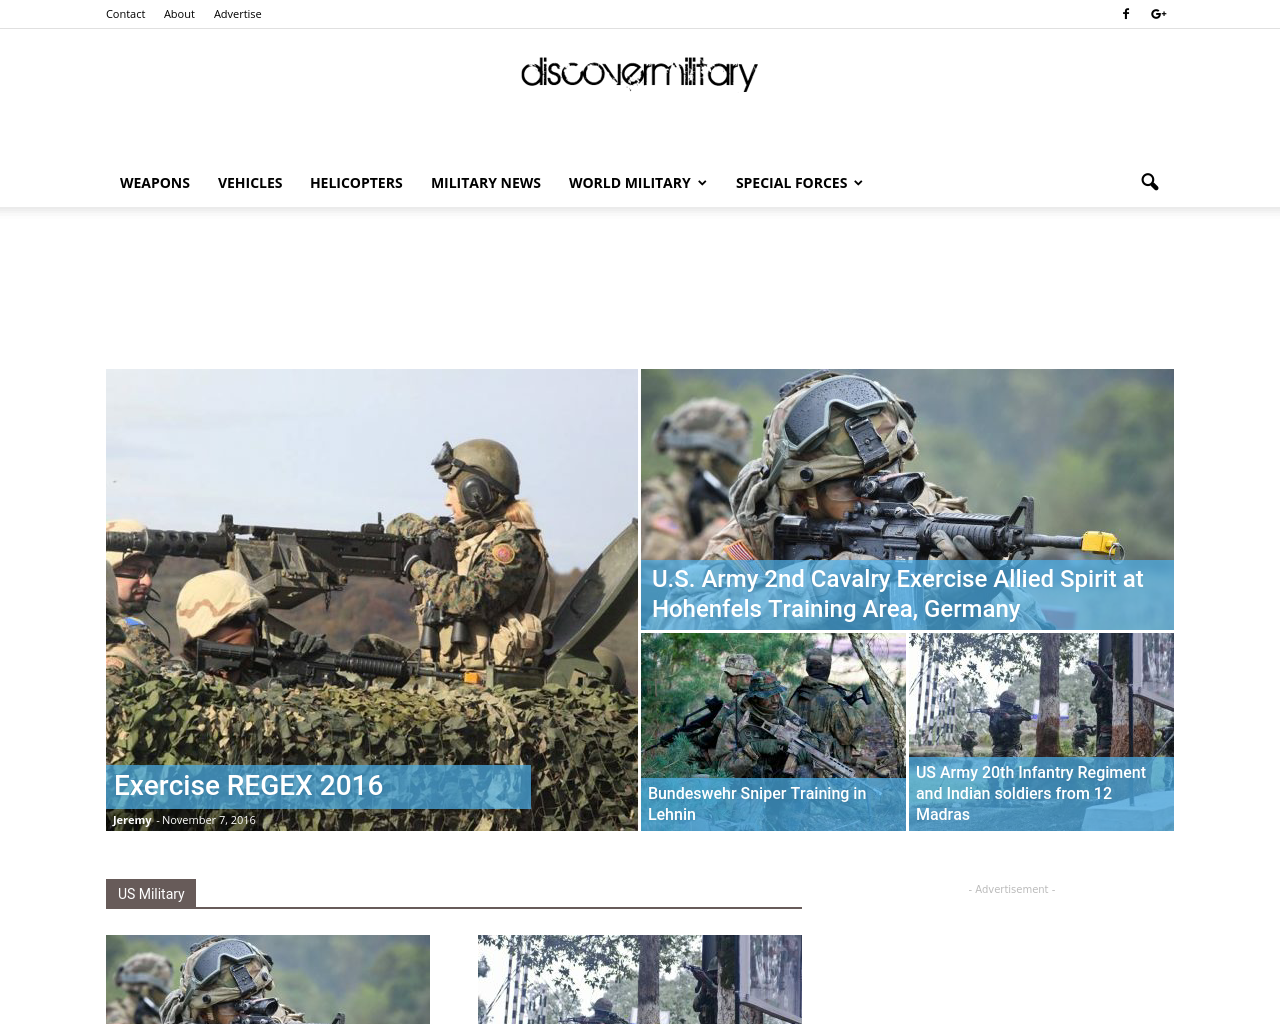 Discover-Military-Advertising-Reviews-Pricing